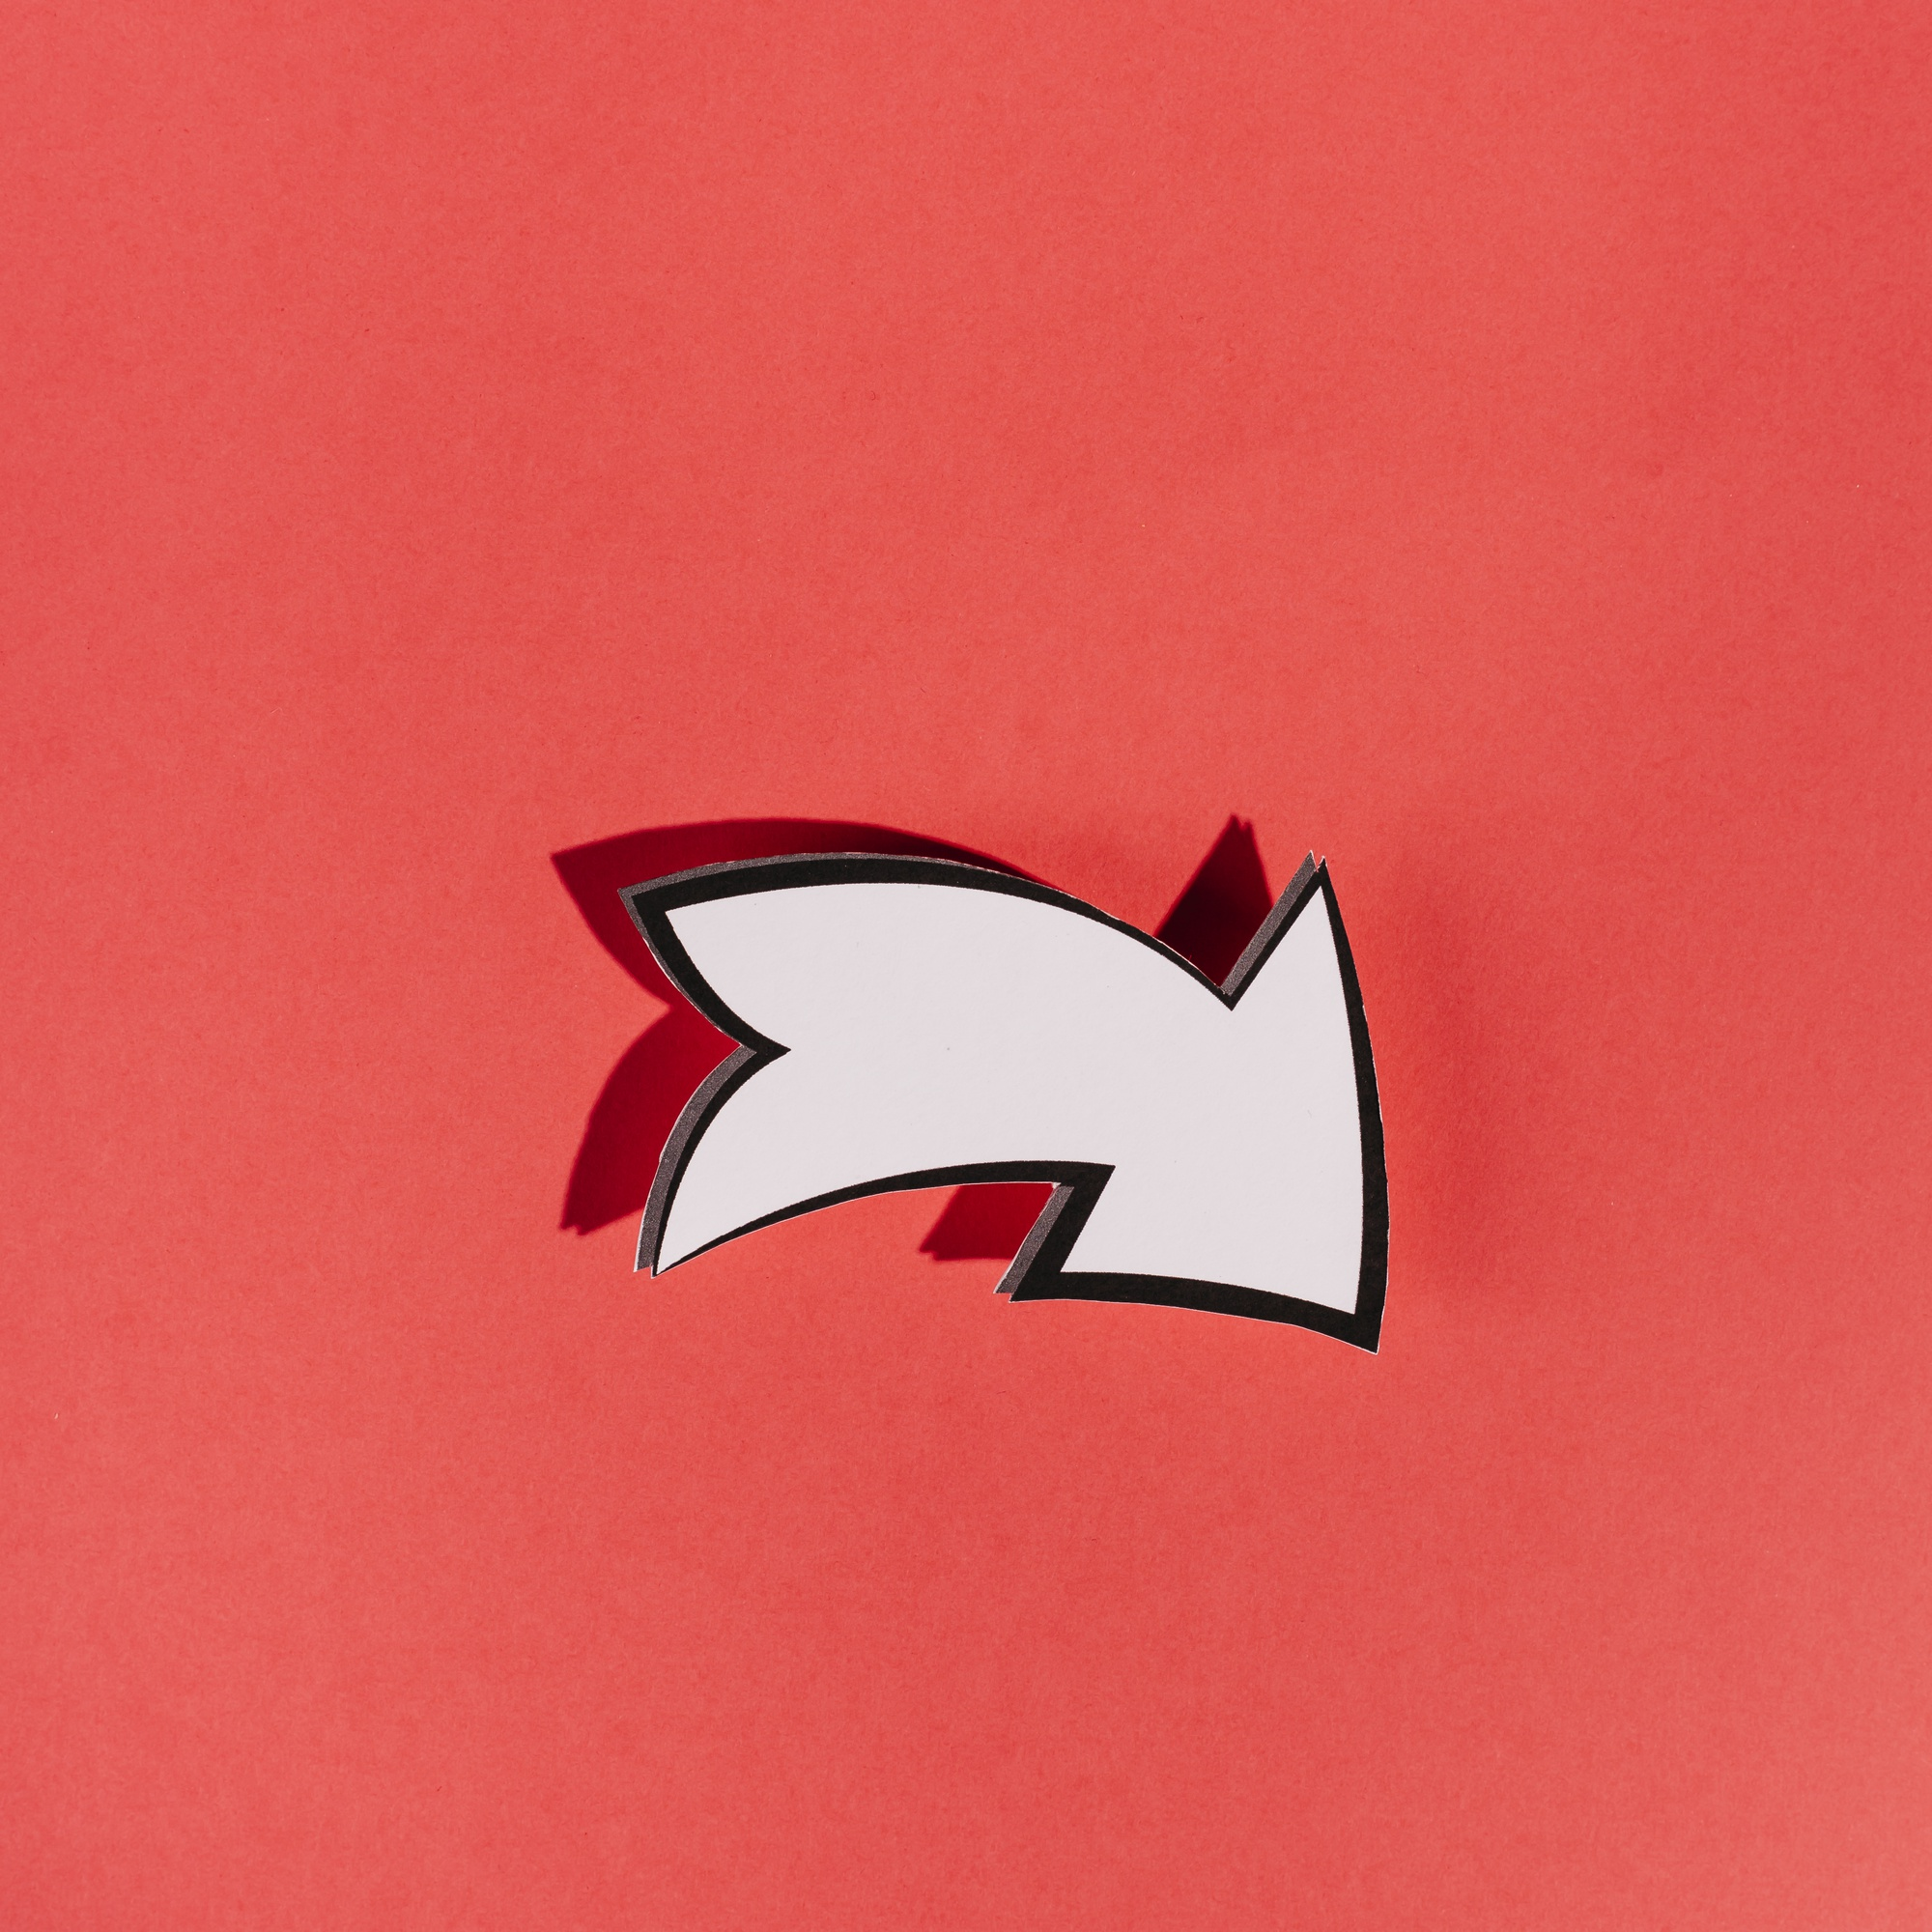 White directional arrow on red background